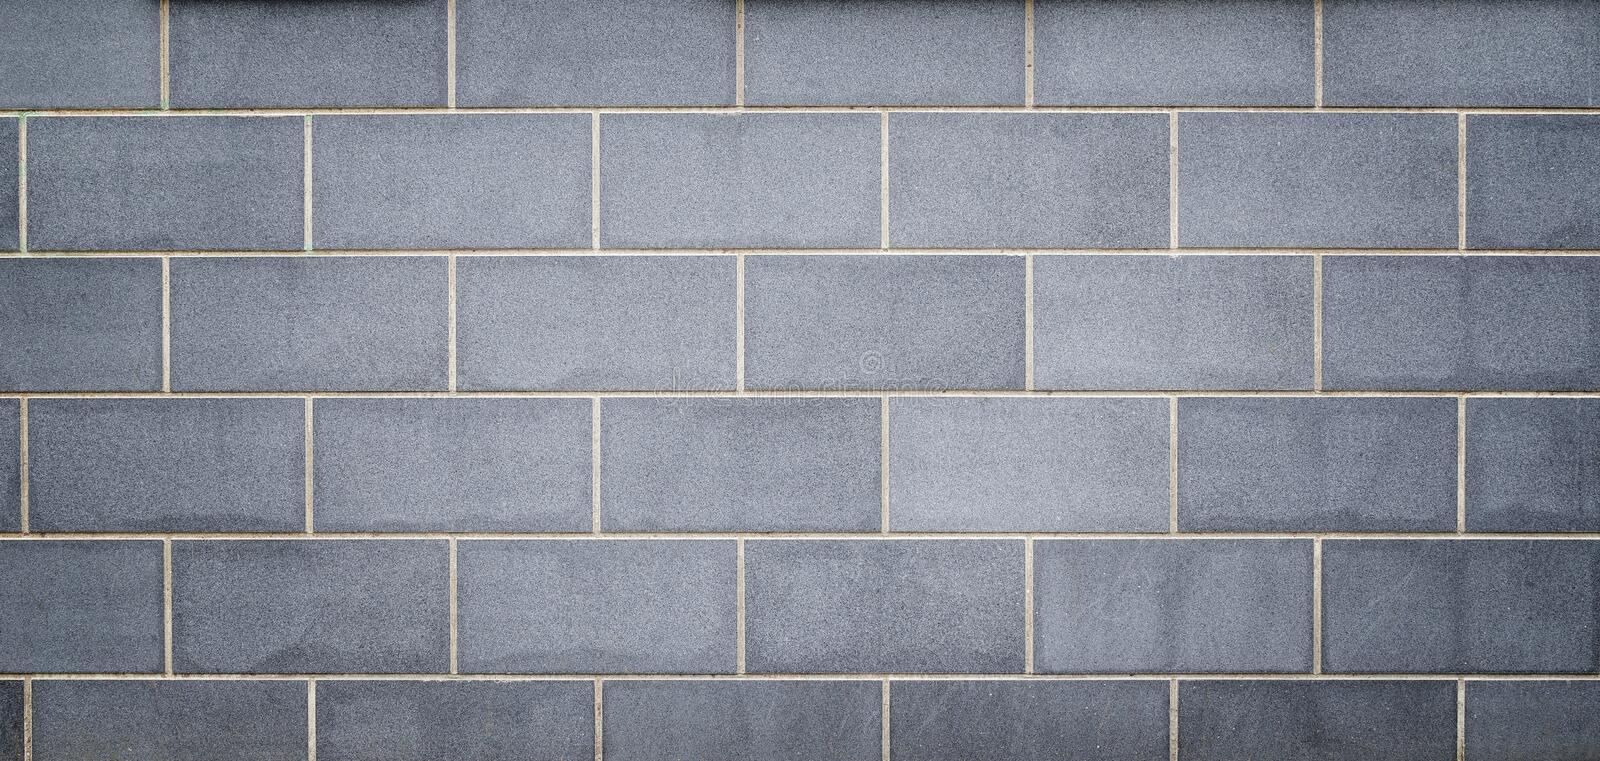 Modern light bluish gray slab wall background. High resolution full frame background of a new, modern and clean wall or building exterior made of light bluish royalty free stock images